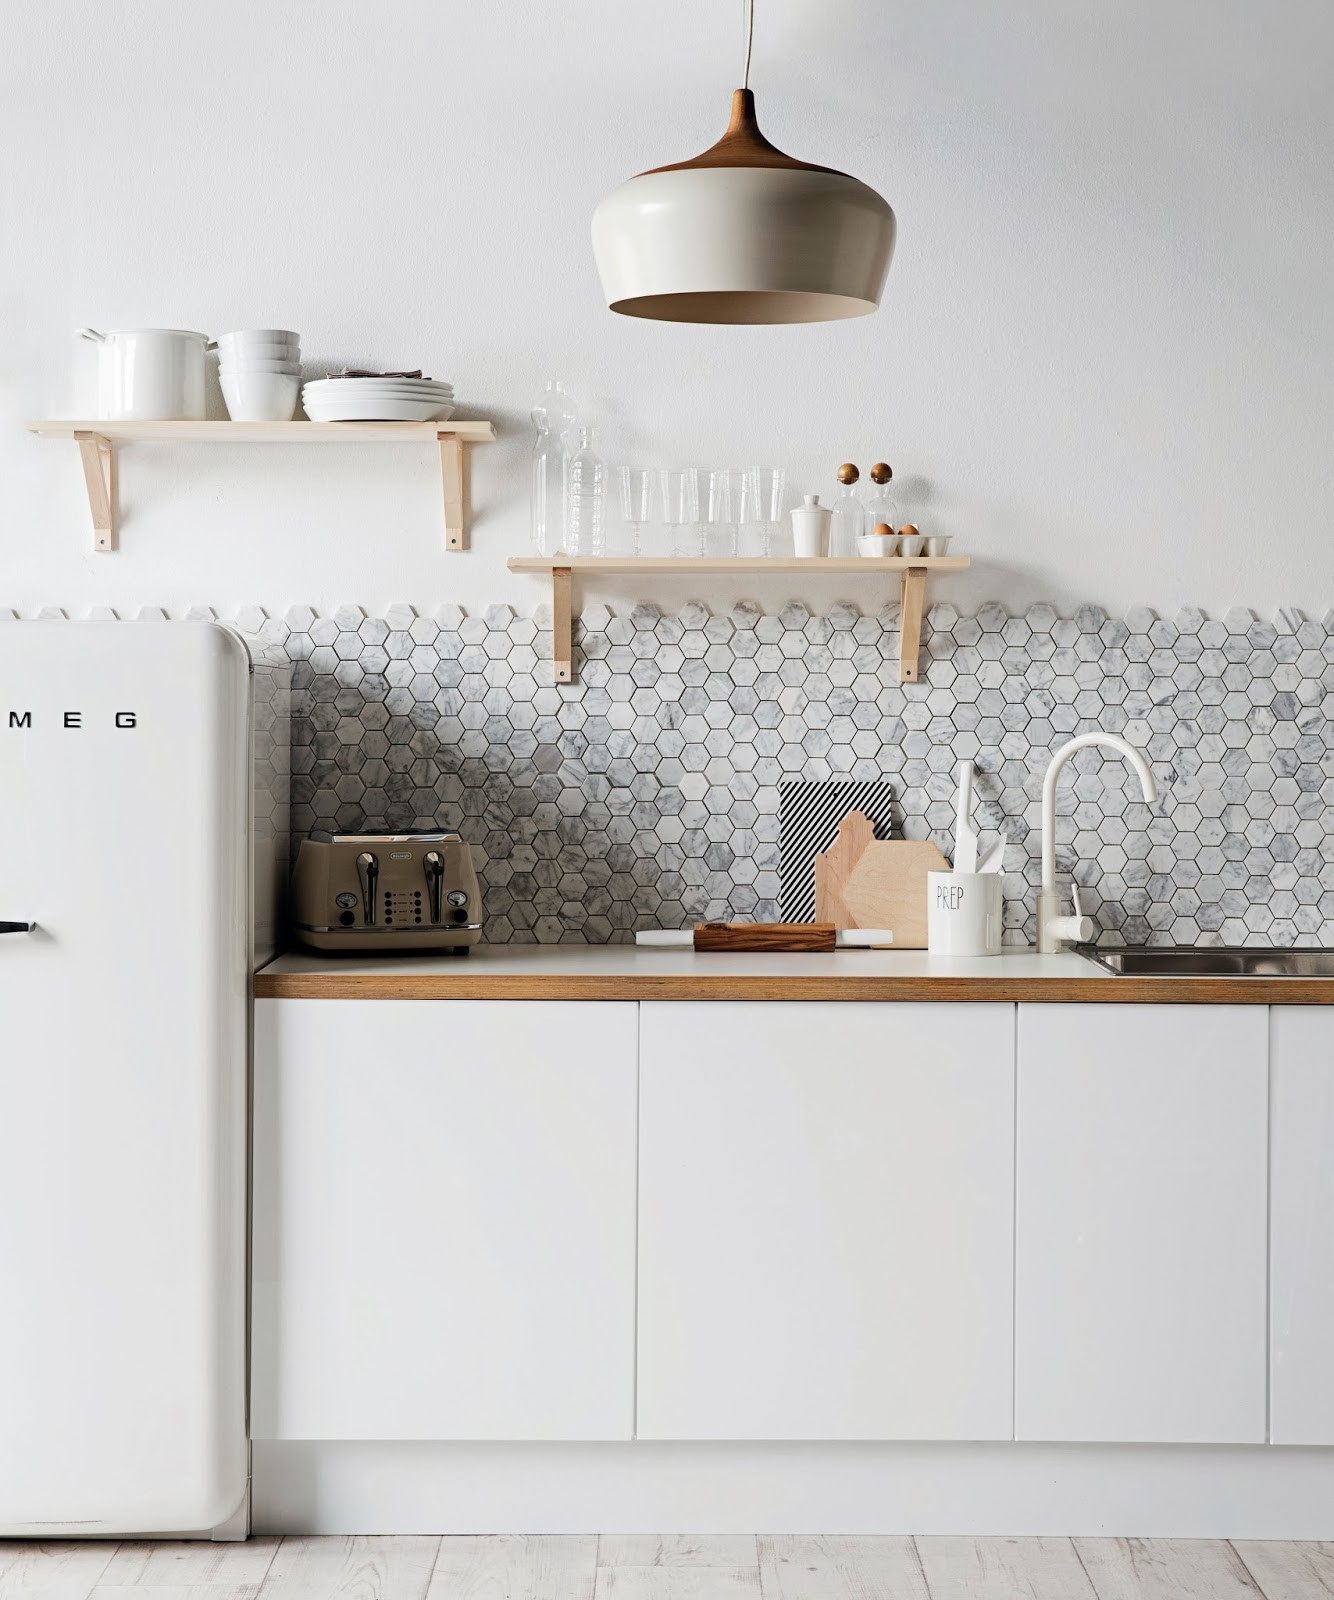 Marble mosaic kitchen backsplash